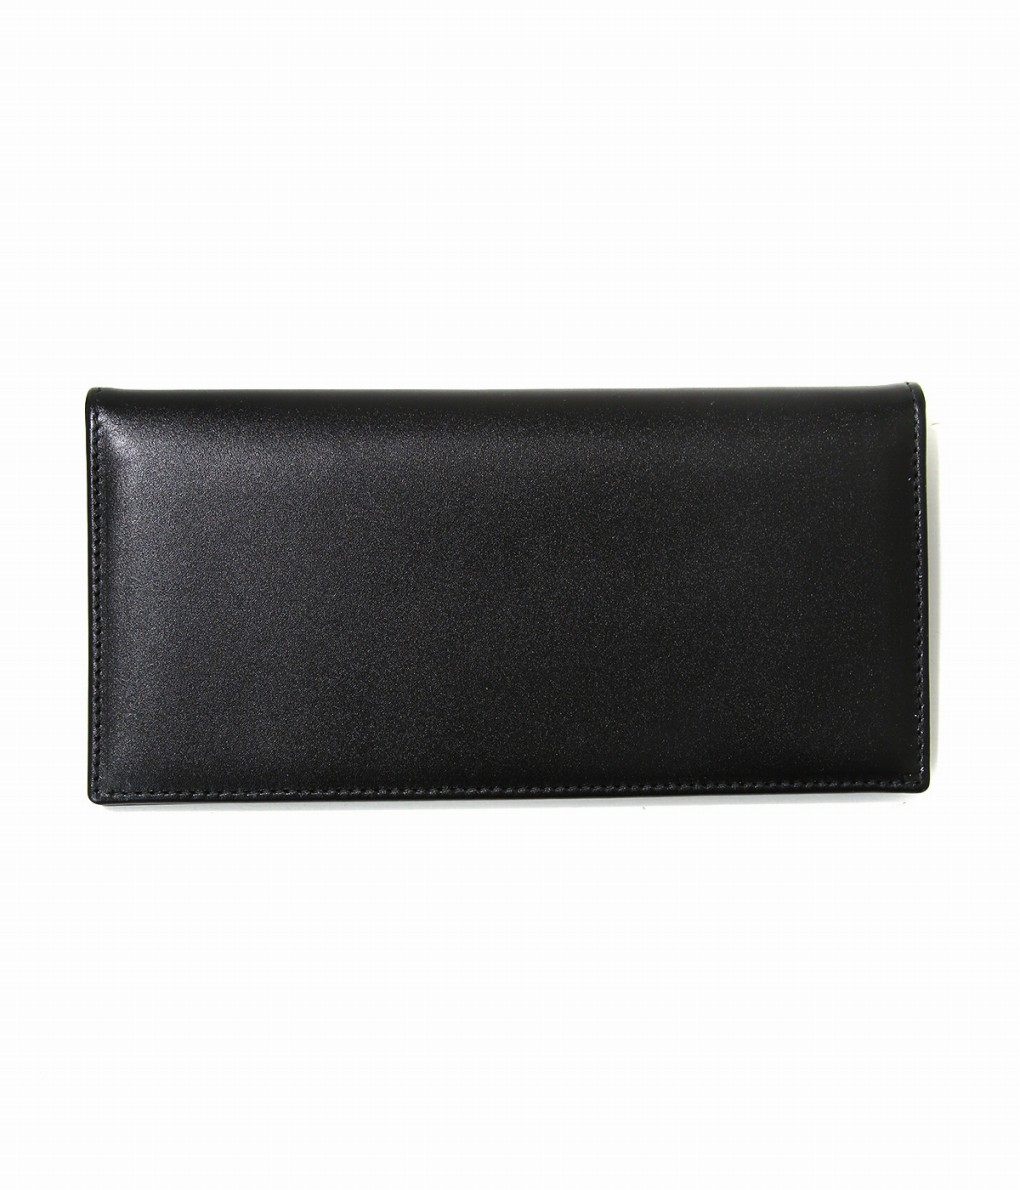 ETTINGER / エッティンガー : LONG WALLET WITH ZIP BLK/PPL : ロングウォレット 長財布 : ST953A 【MUS】